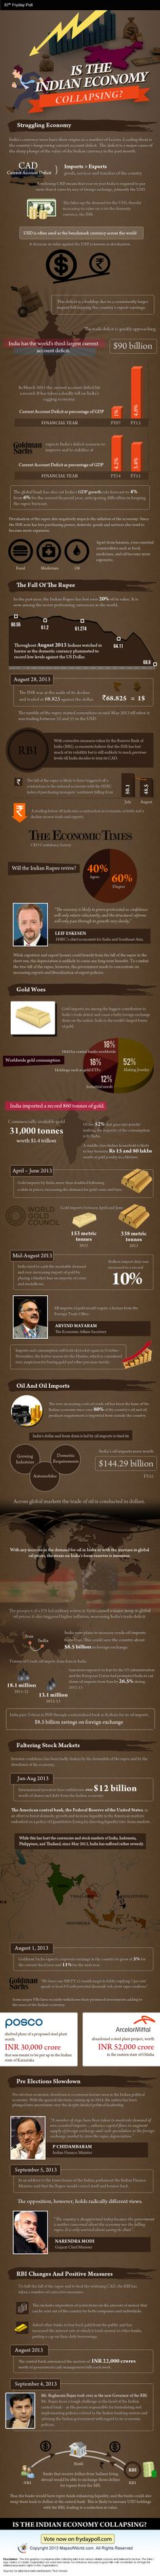 An essential Info-graphic about the Indian economy. Find facts & stats about the fall of the rupee, impact on gold and oil imports, faltering stock markets, pre-election slowdown and the positive measures brought in by the Reserve Bank of India.